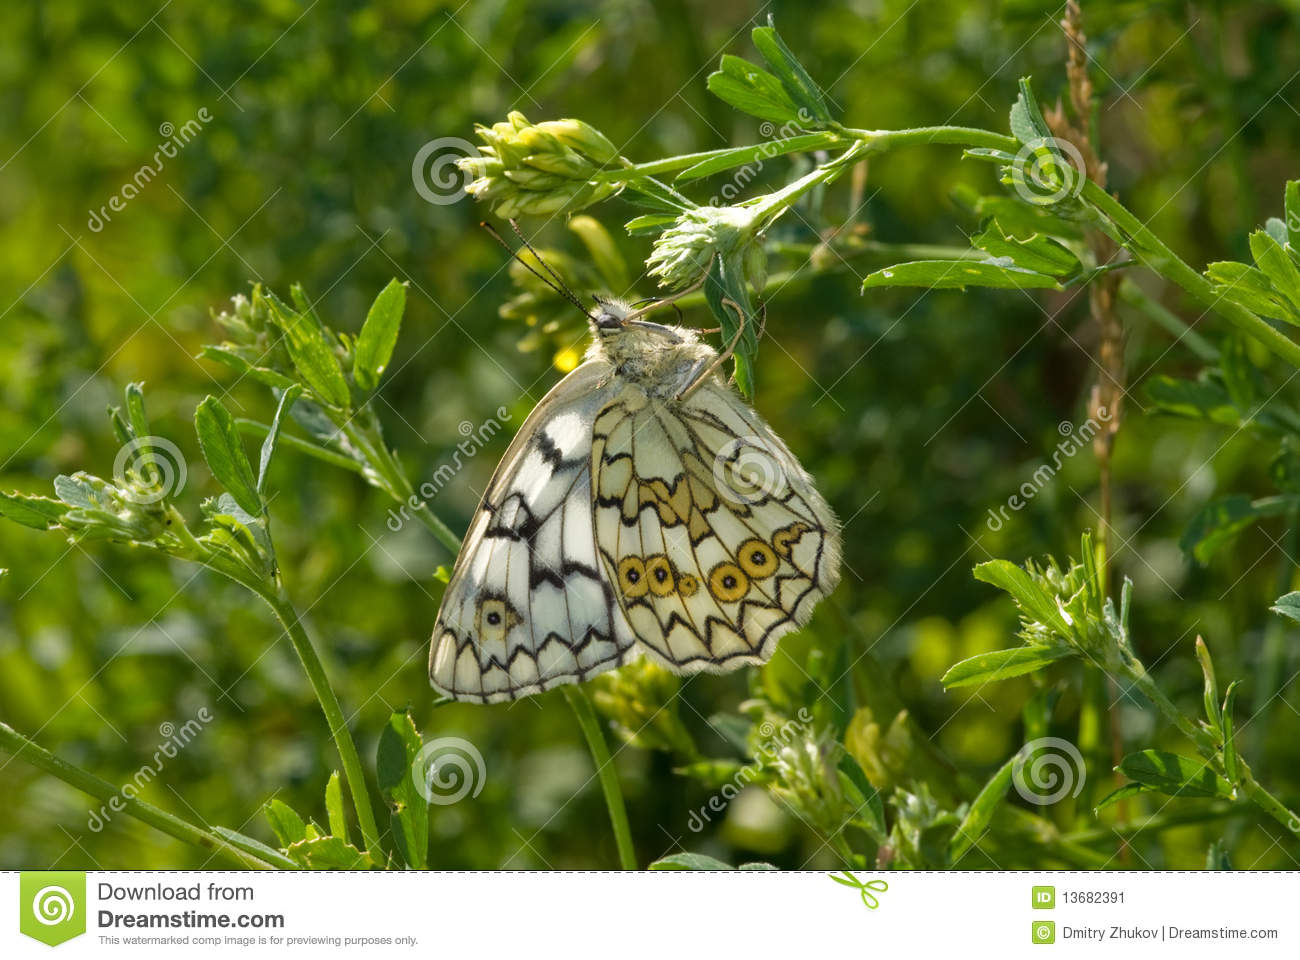 The Satyrid Butterfly